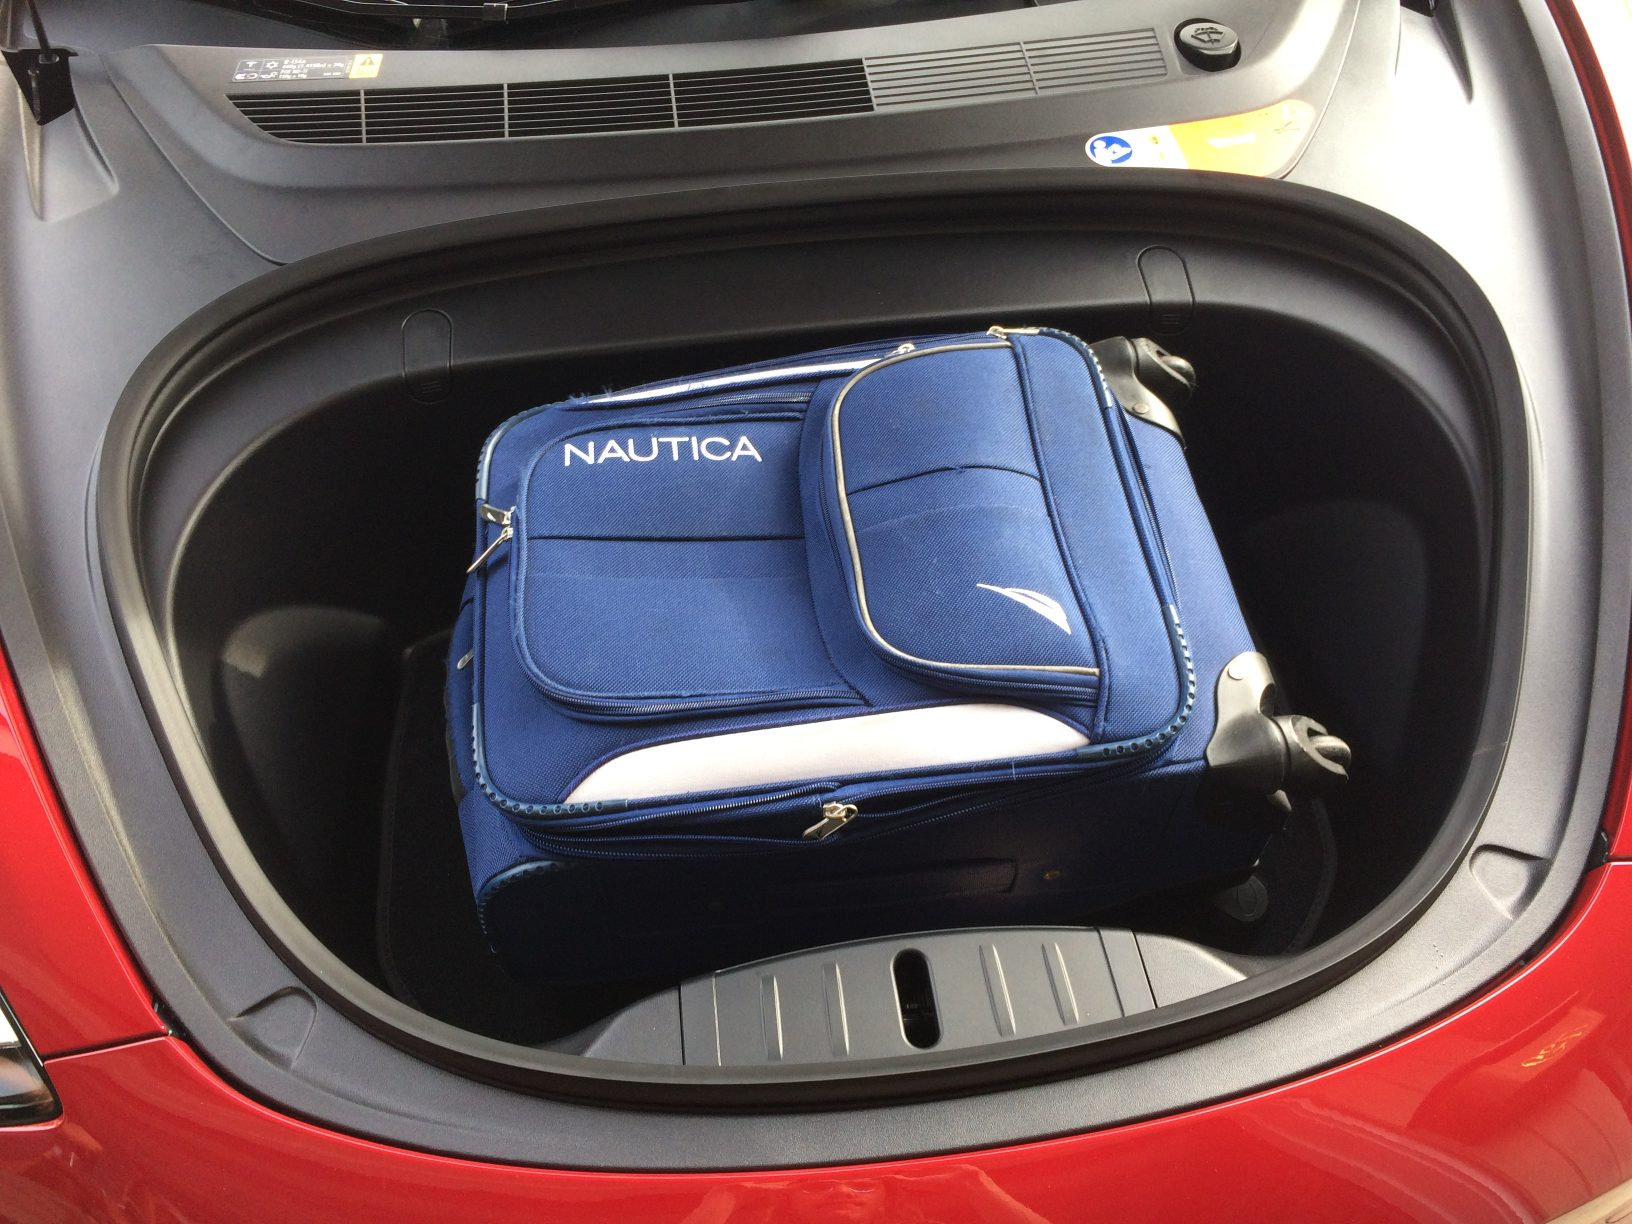 The Electrek Review Tesla Model 3 A Promise Delivered This Switch Circuit In Any Way Perhaps Like And Finally Has Seen It Fit To Grace Us With Quite Lot Of Interior Storage Options Map Pockets Door Large Center Console Two